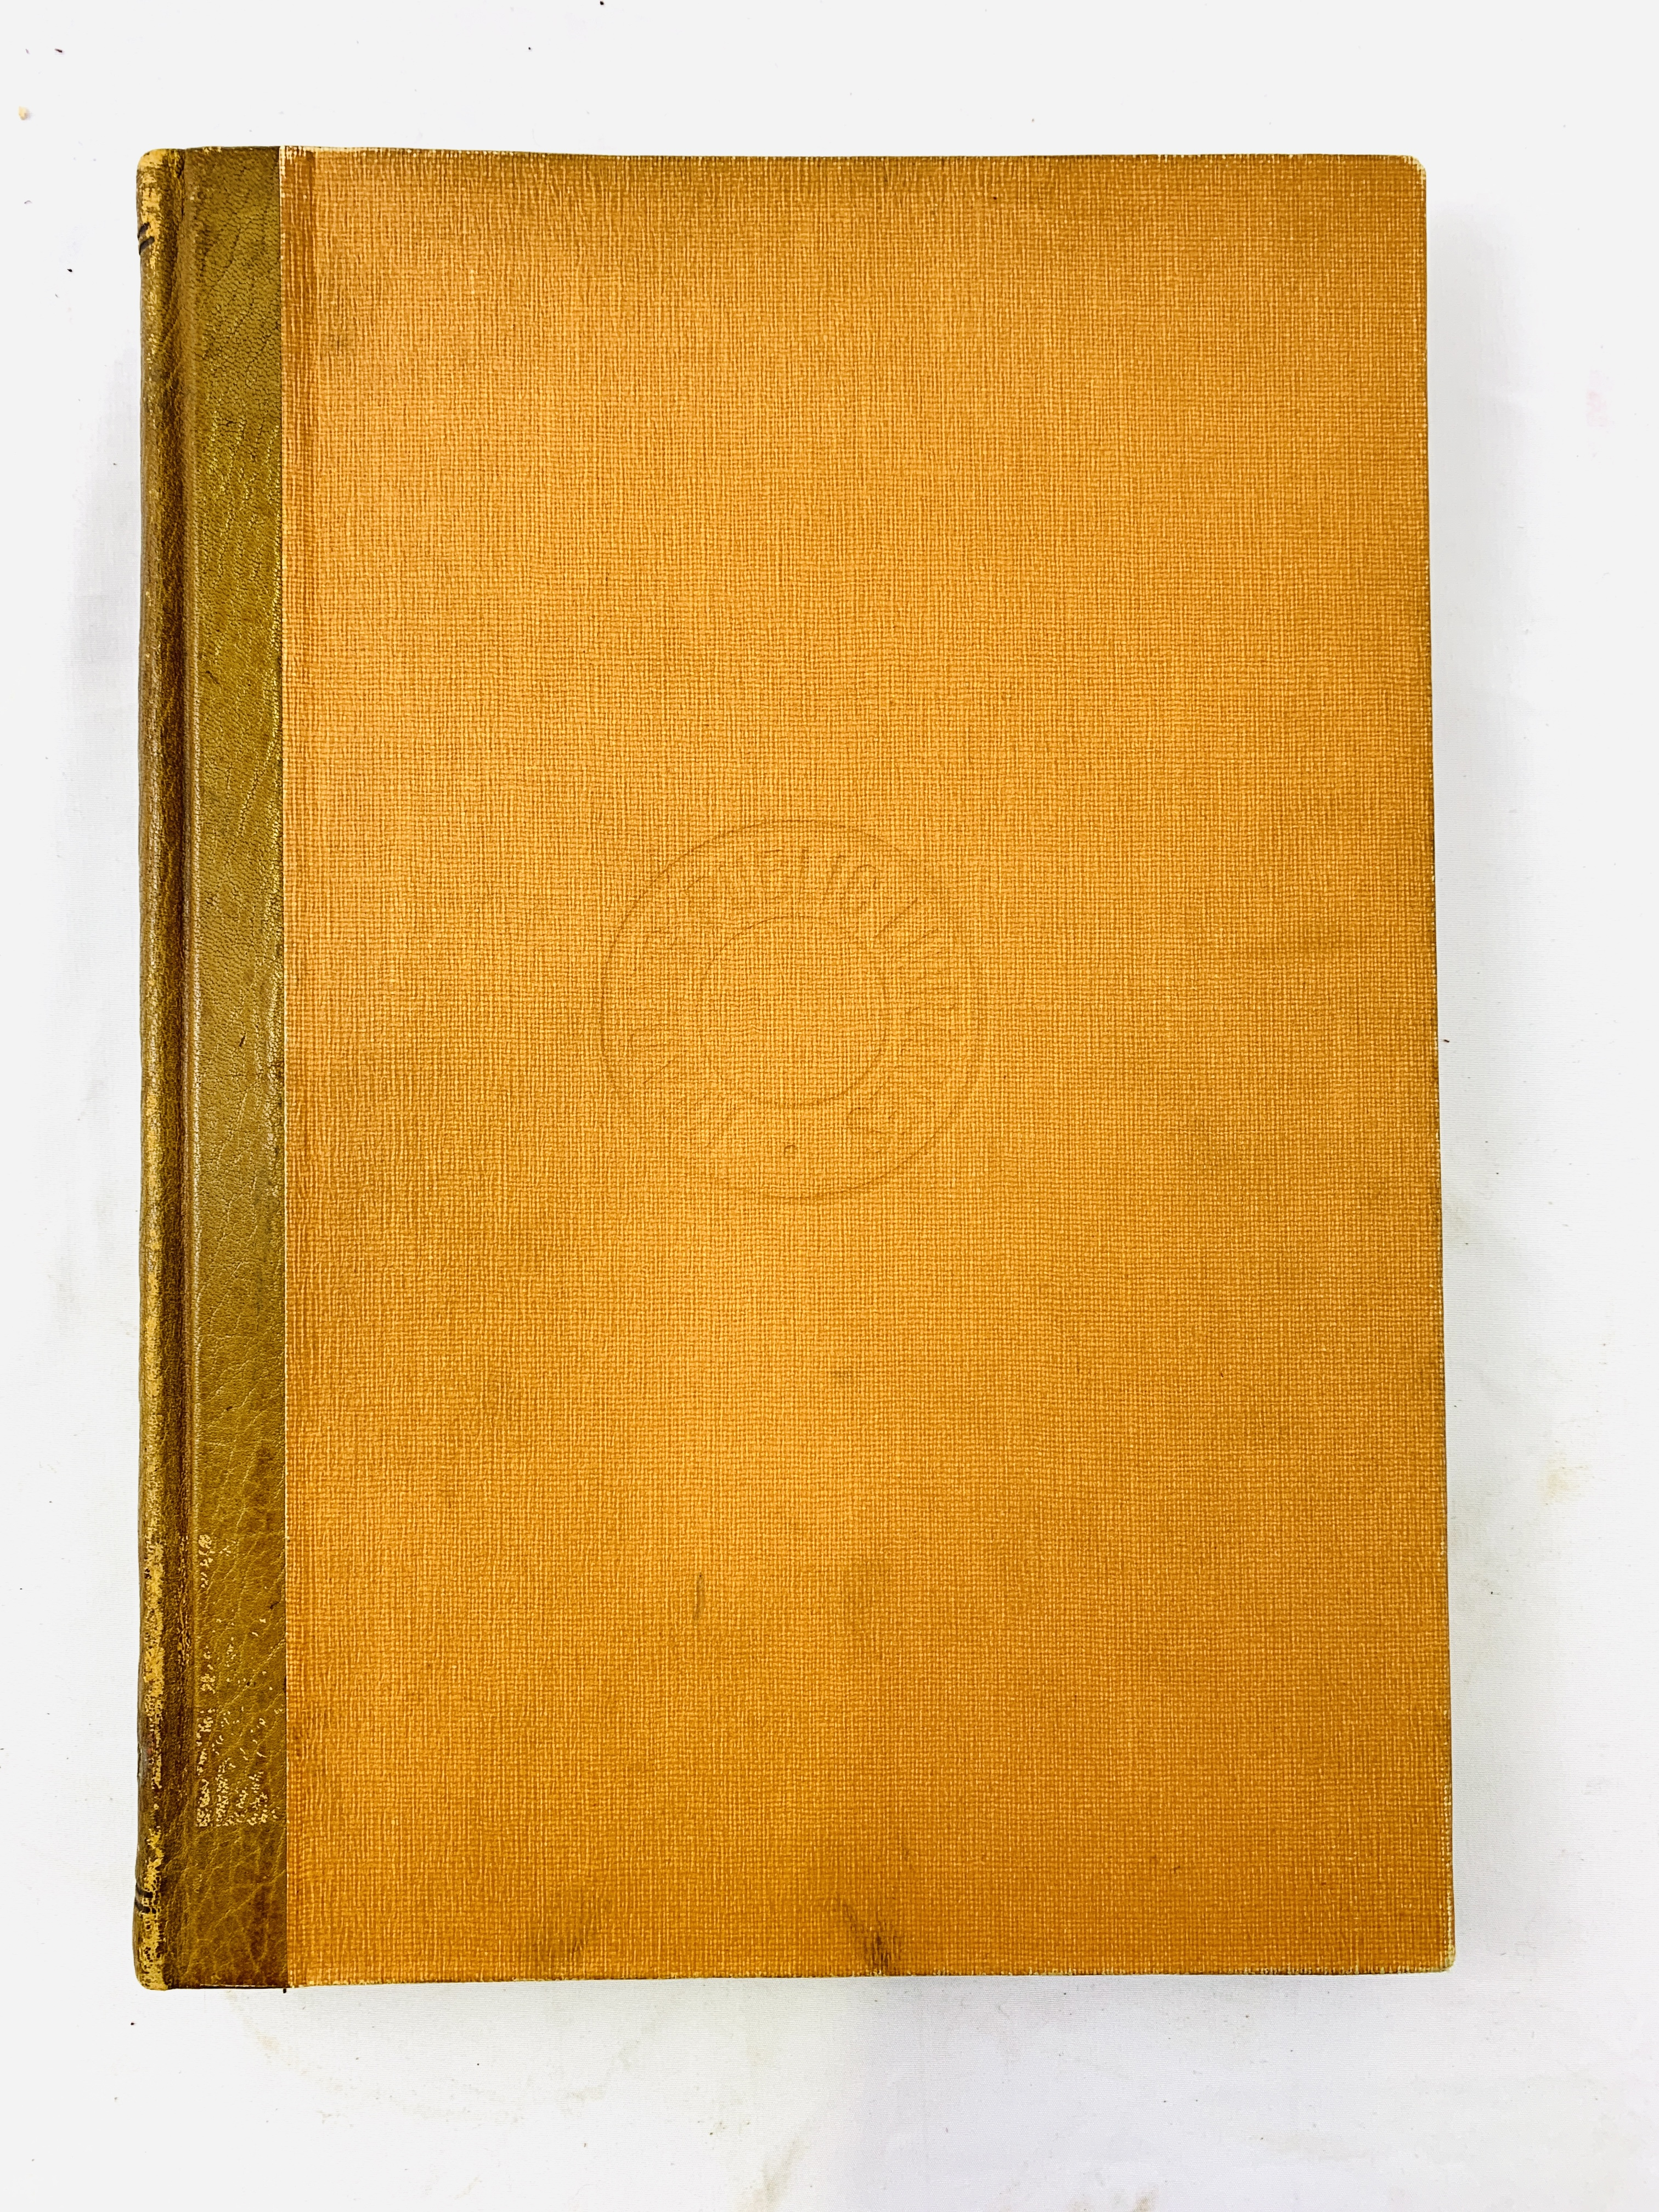 The Old Watercolour Society, 1804-1904, and Arts and Crafts, both edited by Charles Holme - Image 9 of 9